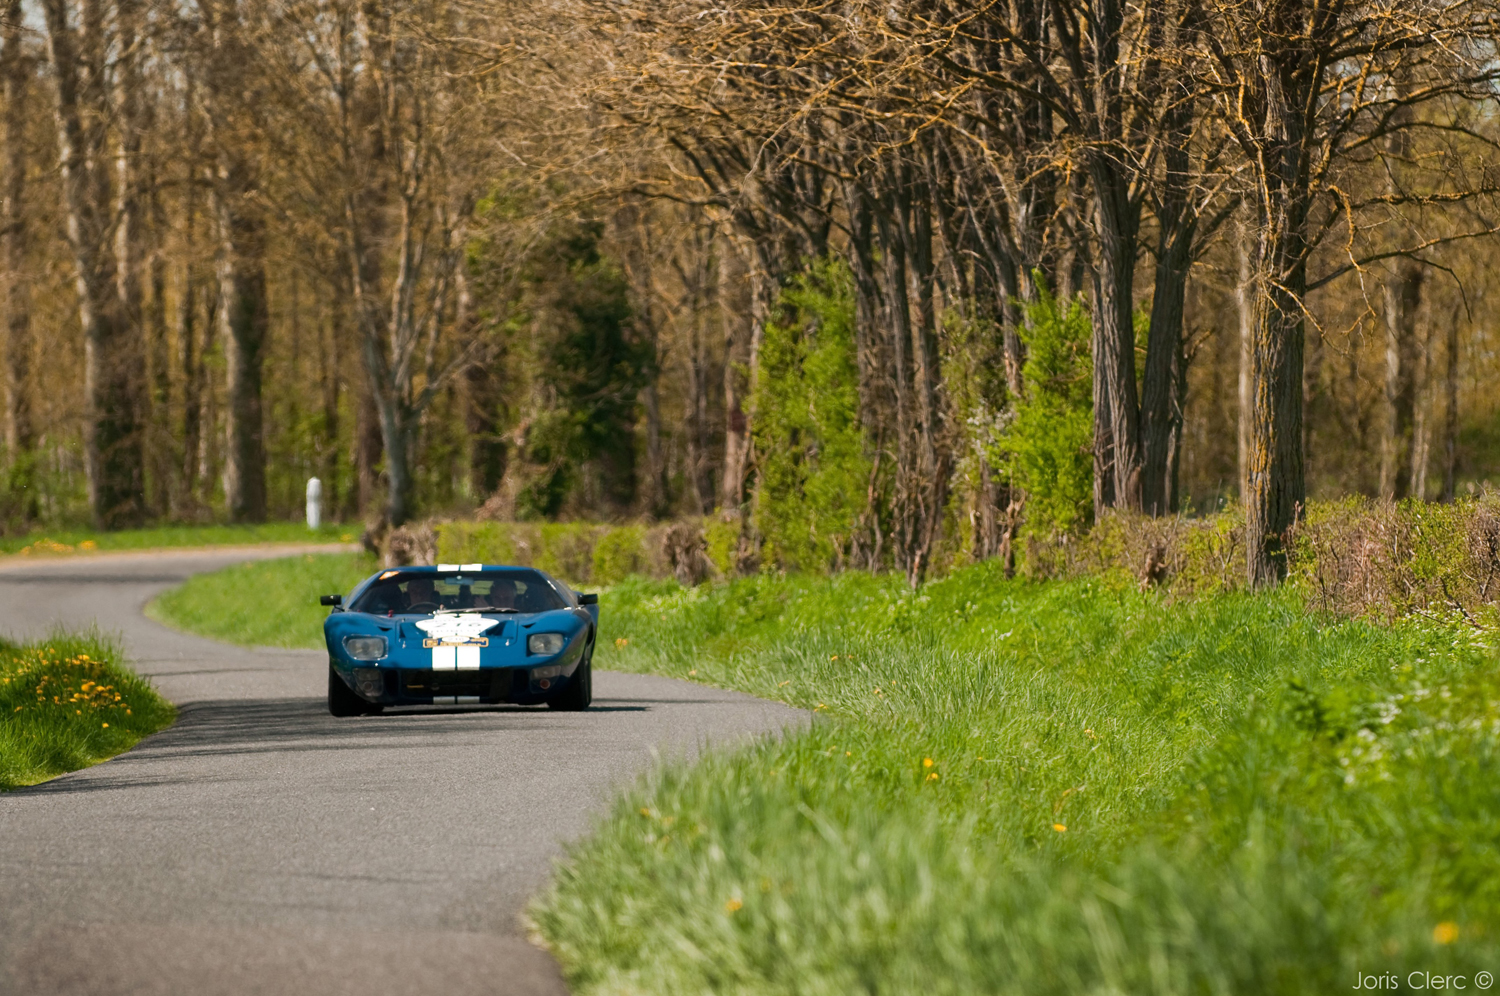 Tour Auto 2013 Optic 2000 - Joris Clerc - Ford GT 40